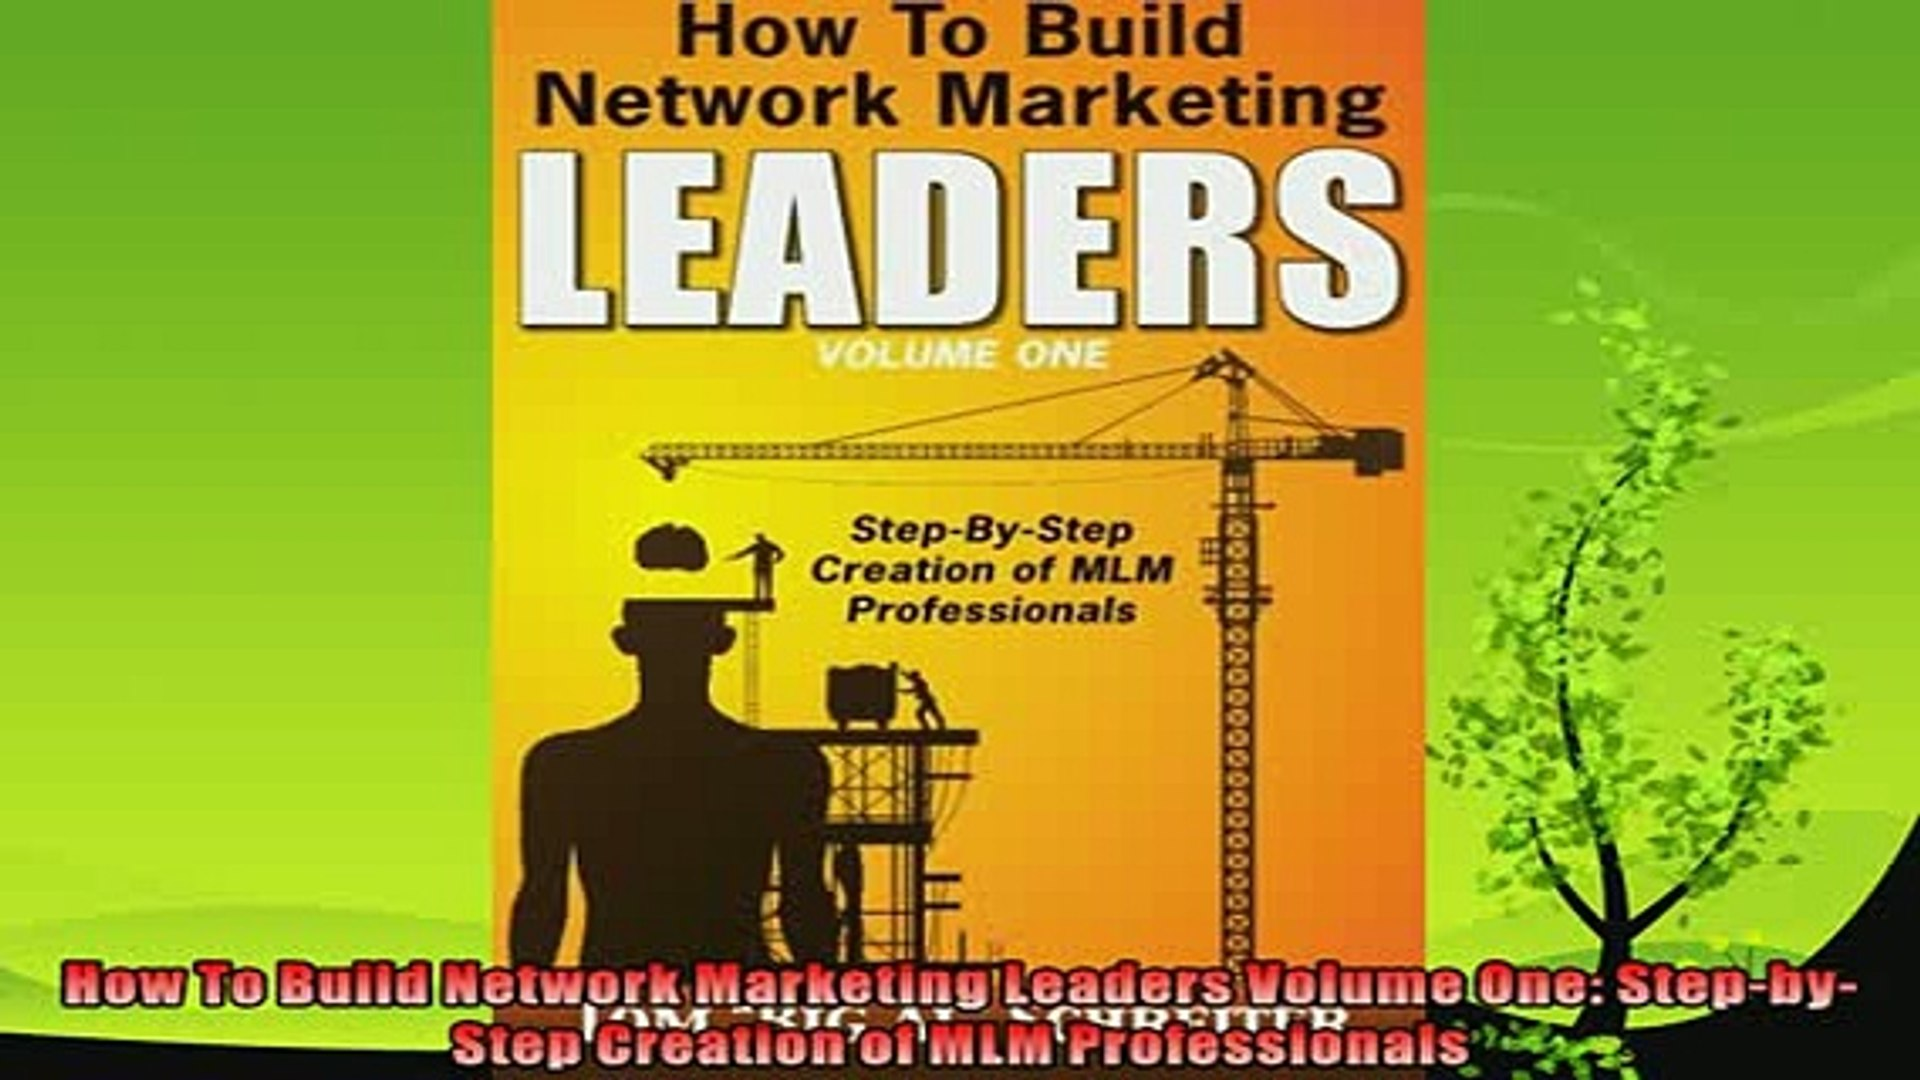 How To Build Network Marketing Leaders Volume One Step-by-Step Creation of MLM Professionals